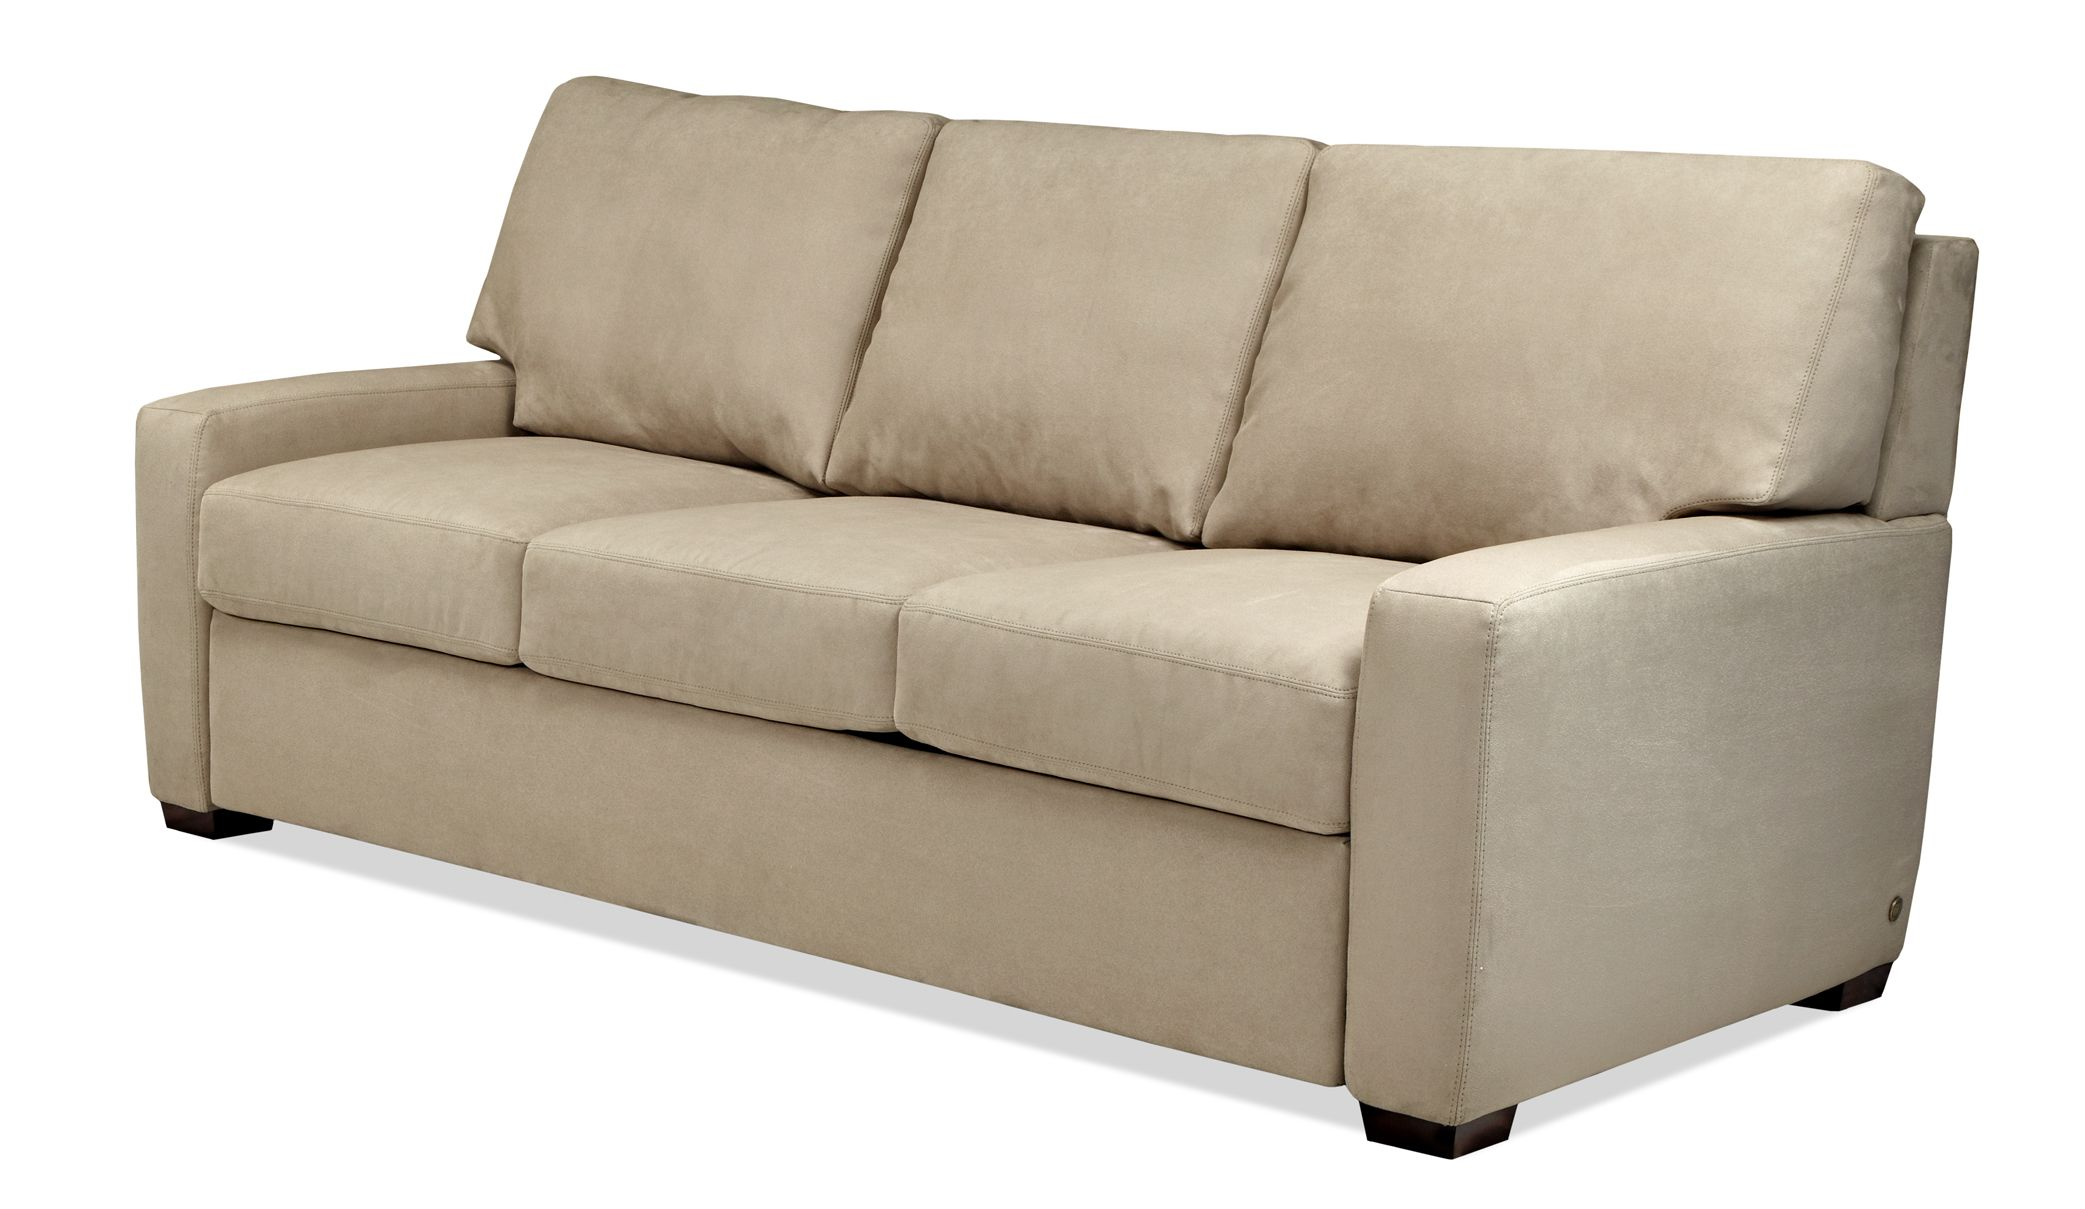 Cidy Comfort Sleeper Sofa By American Leather Is Available In A Range Of Leathers